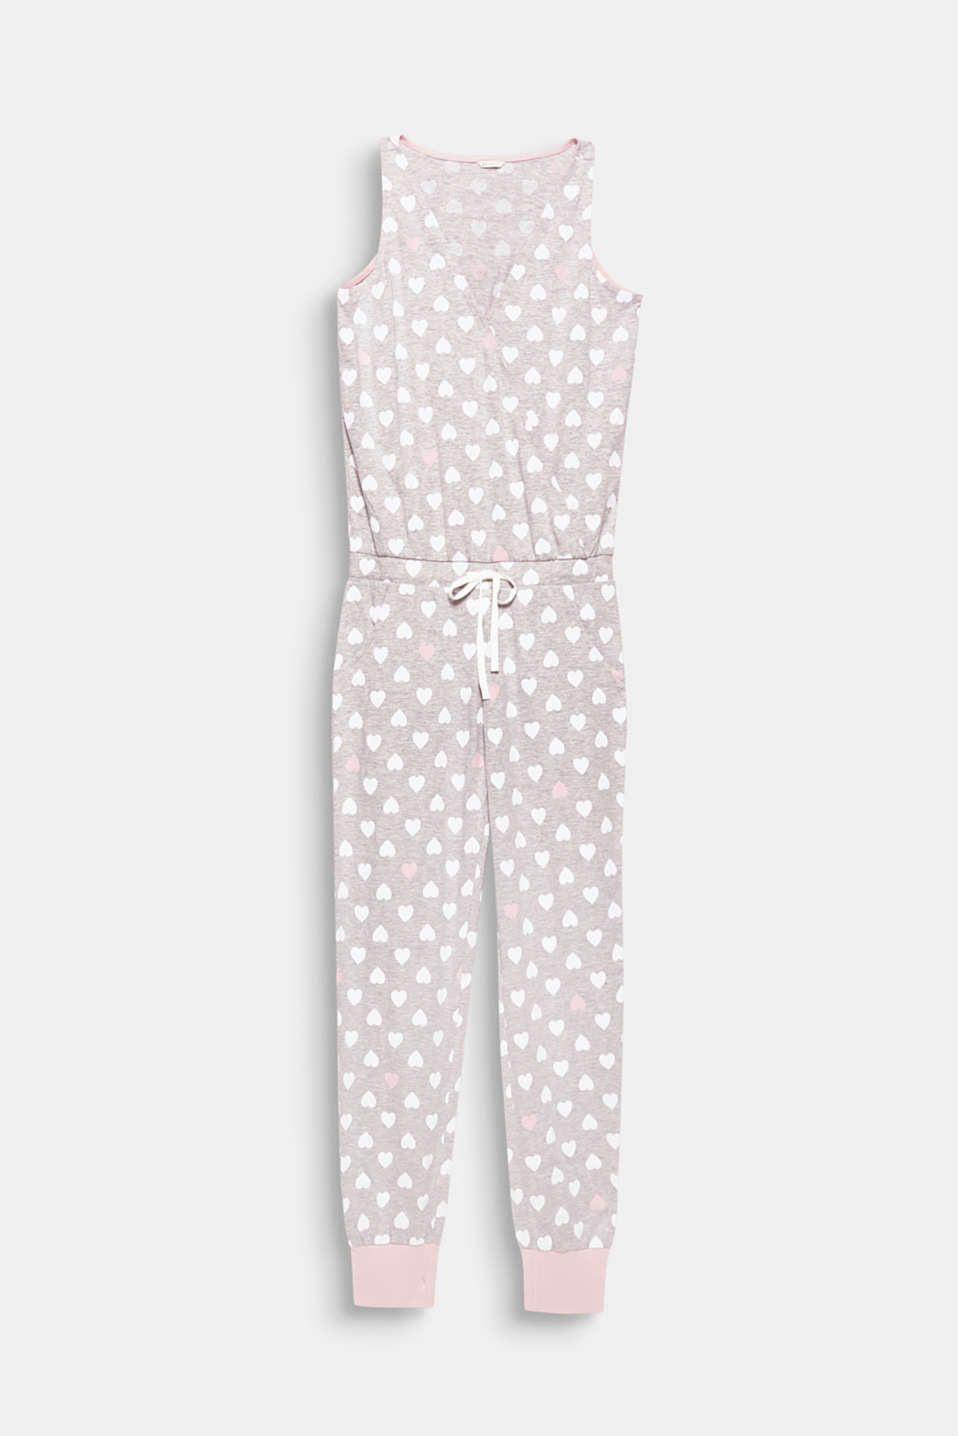 A stylish way to dream the night away: jersey jumpsuit with a pretty heart print and a high feel-good factor!